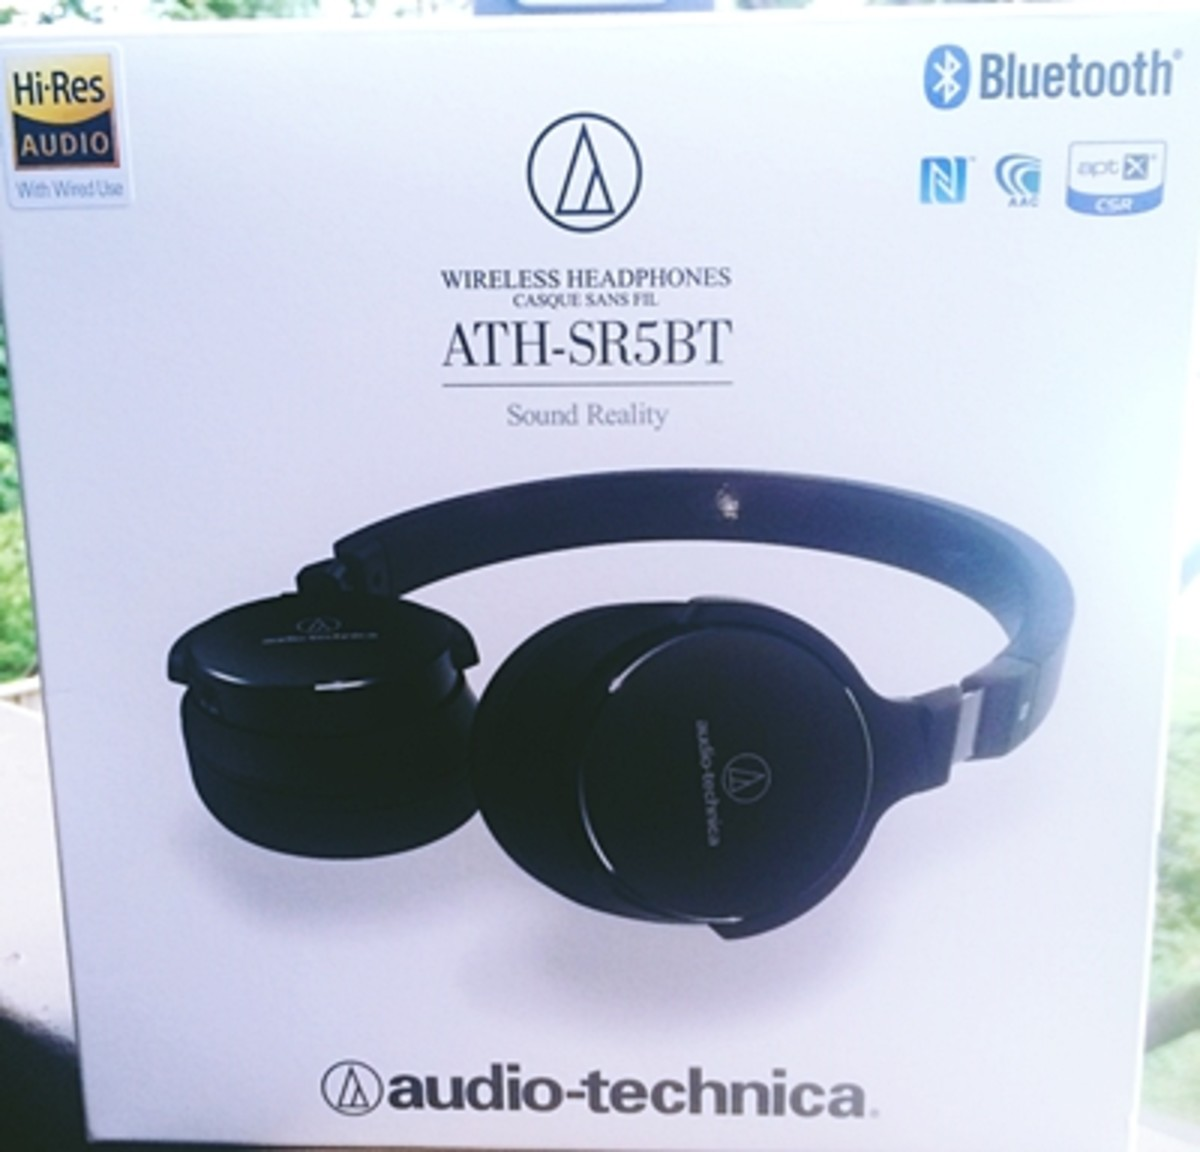 luxurious-modern-sound-a-review-of-audio-techinica-wireless-headphones-ath-sr5bt